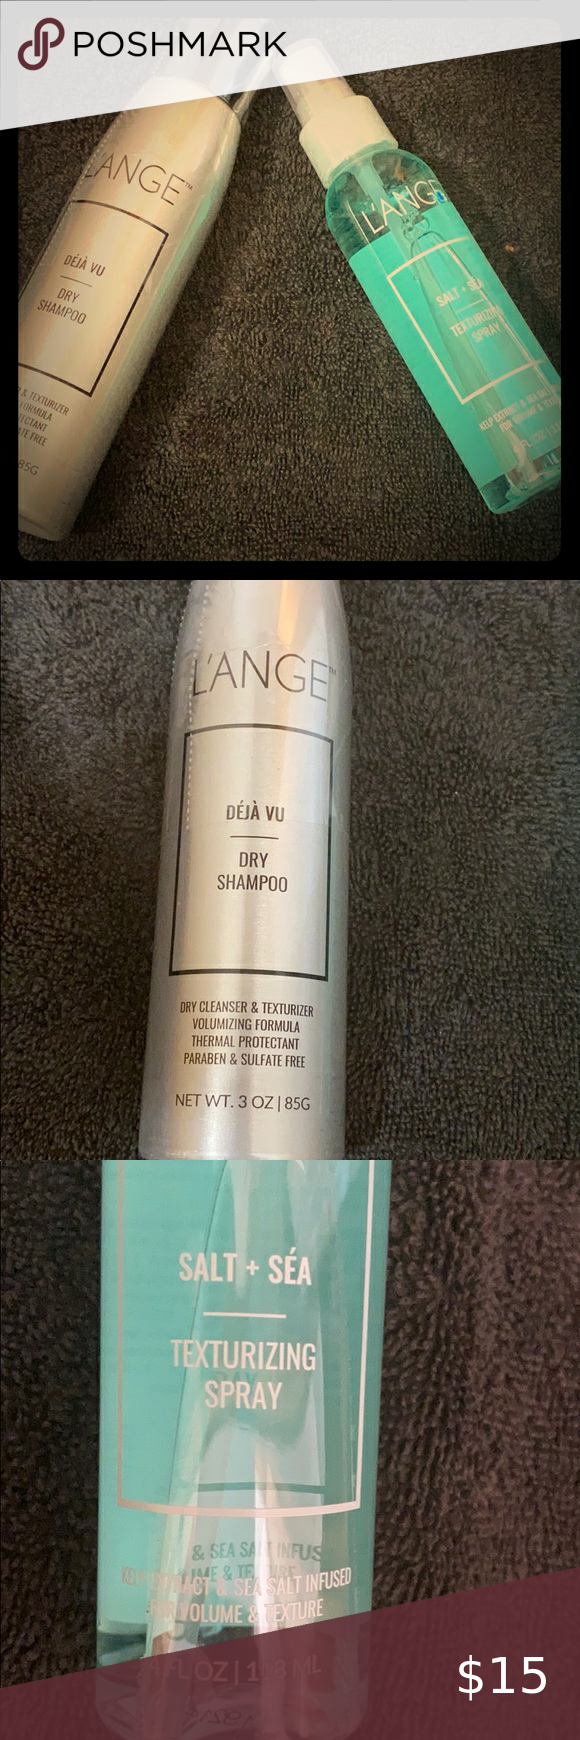 L Ange Hair Products Dry Shampoo Texturizing Spray Thermal Protectant